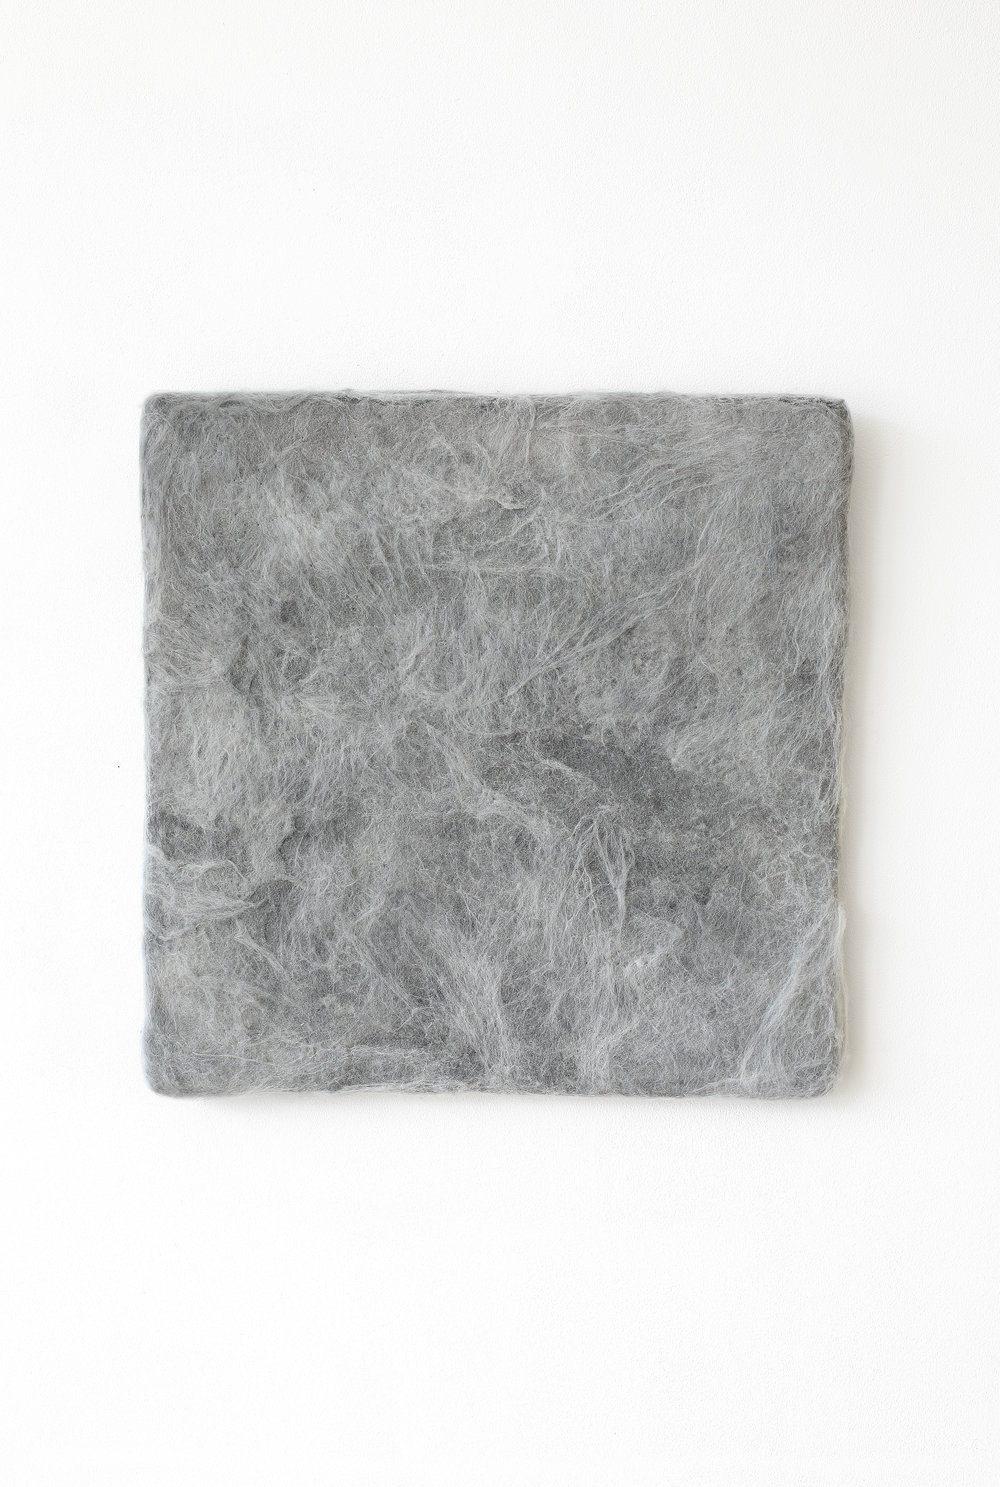 Manuela Garcia ,  Grey Felt , 2017, Wool, graphite and wood